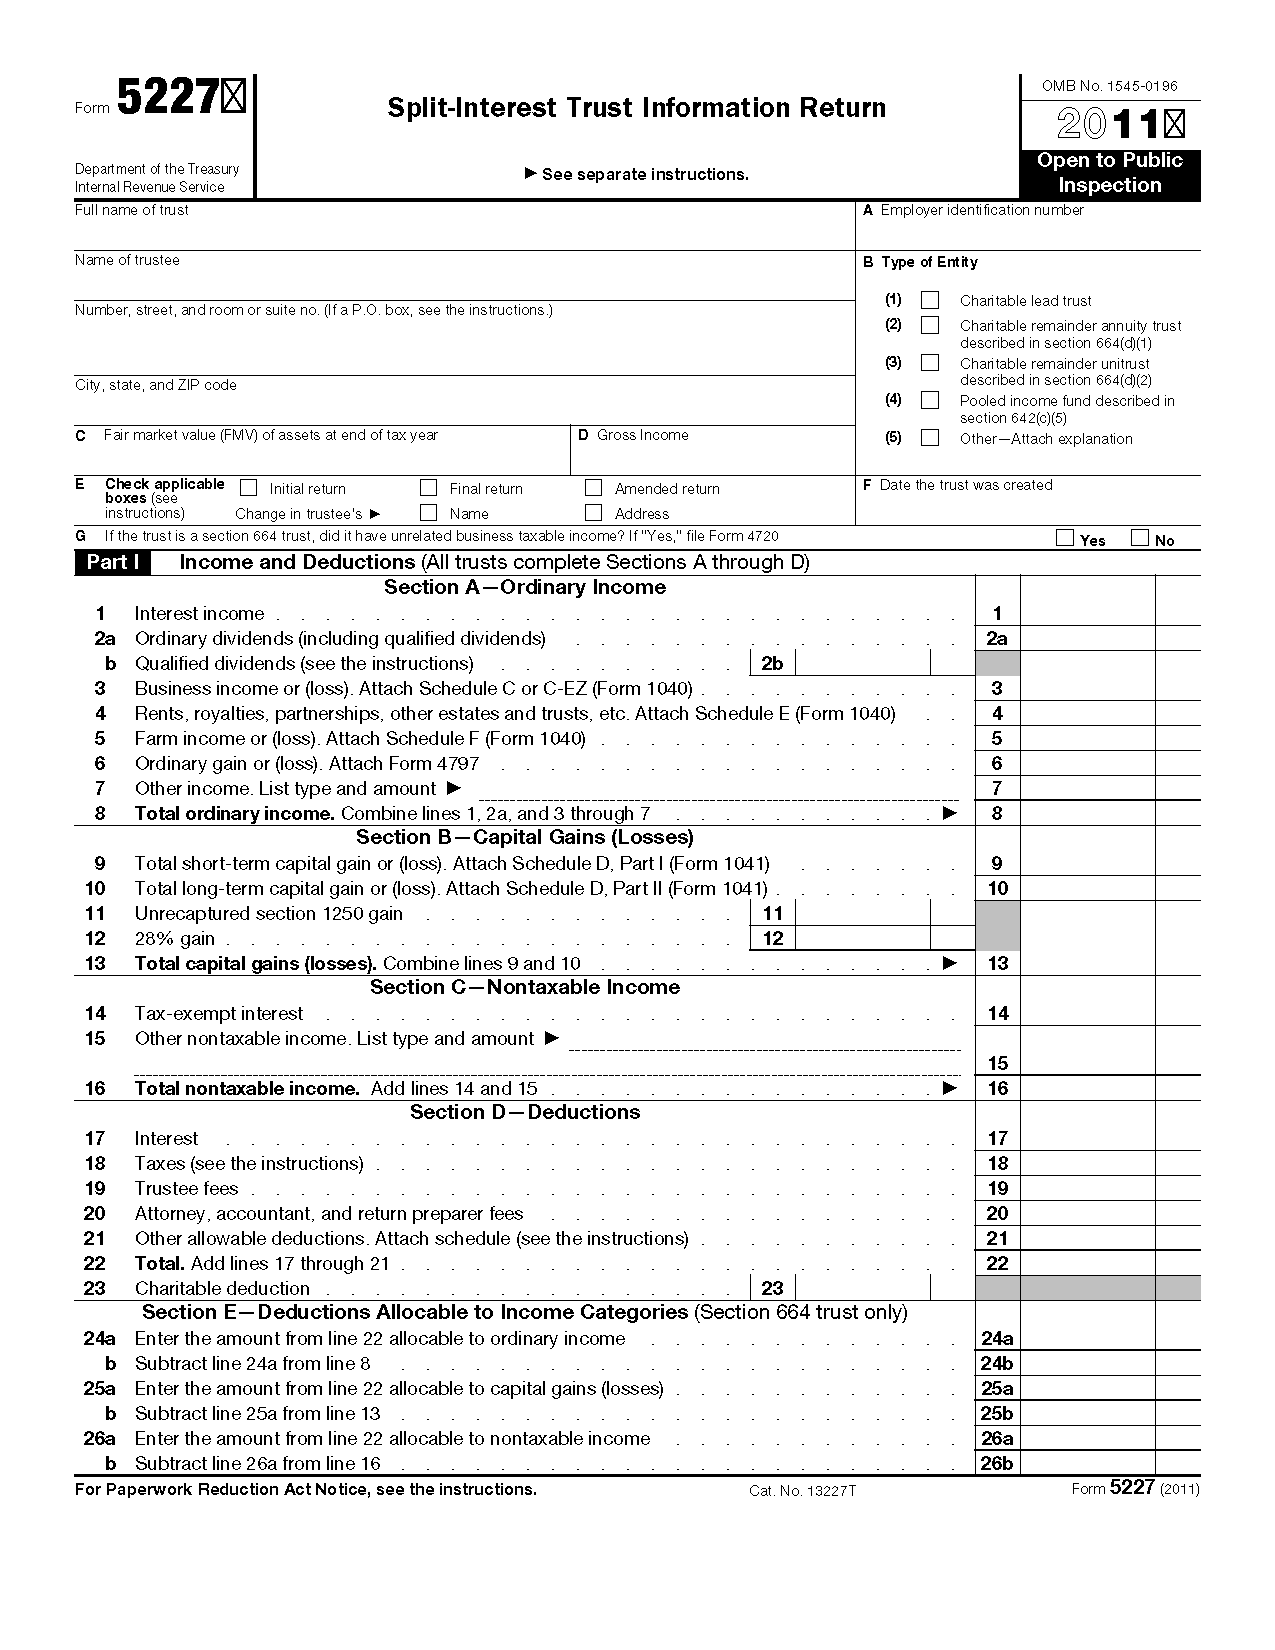 Worksheet Non Cash Charitable Contributions Worksheet non cash charitable contributions worksheet www irade co enjoy donations top